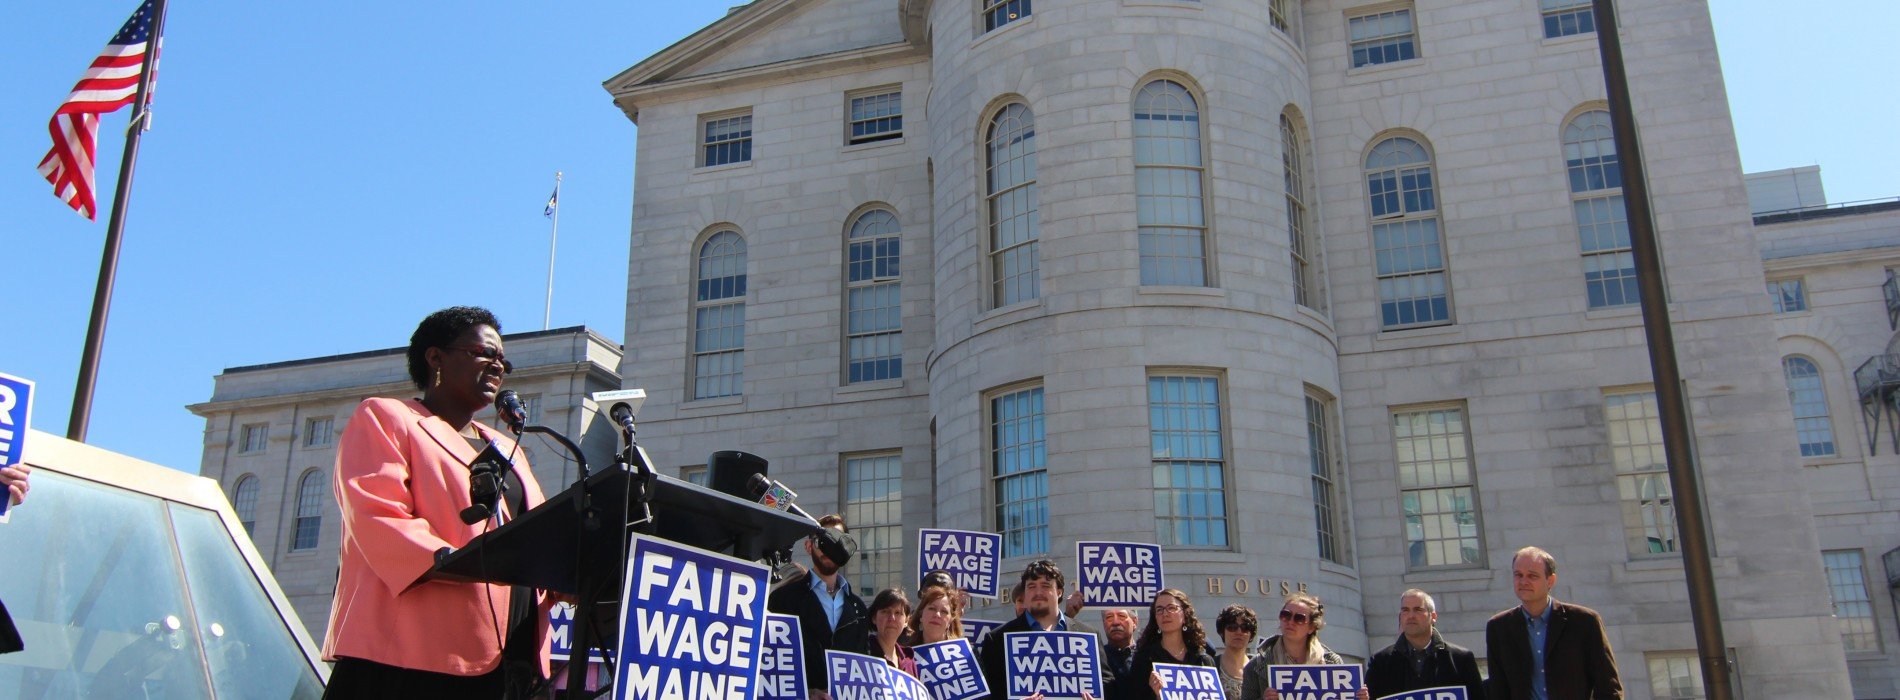 Vital work that pays poverty wages: Maine home care workers speak out